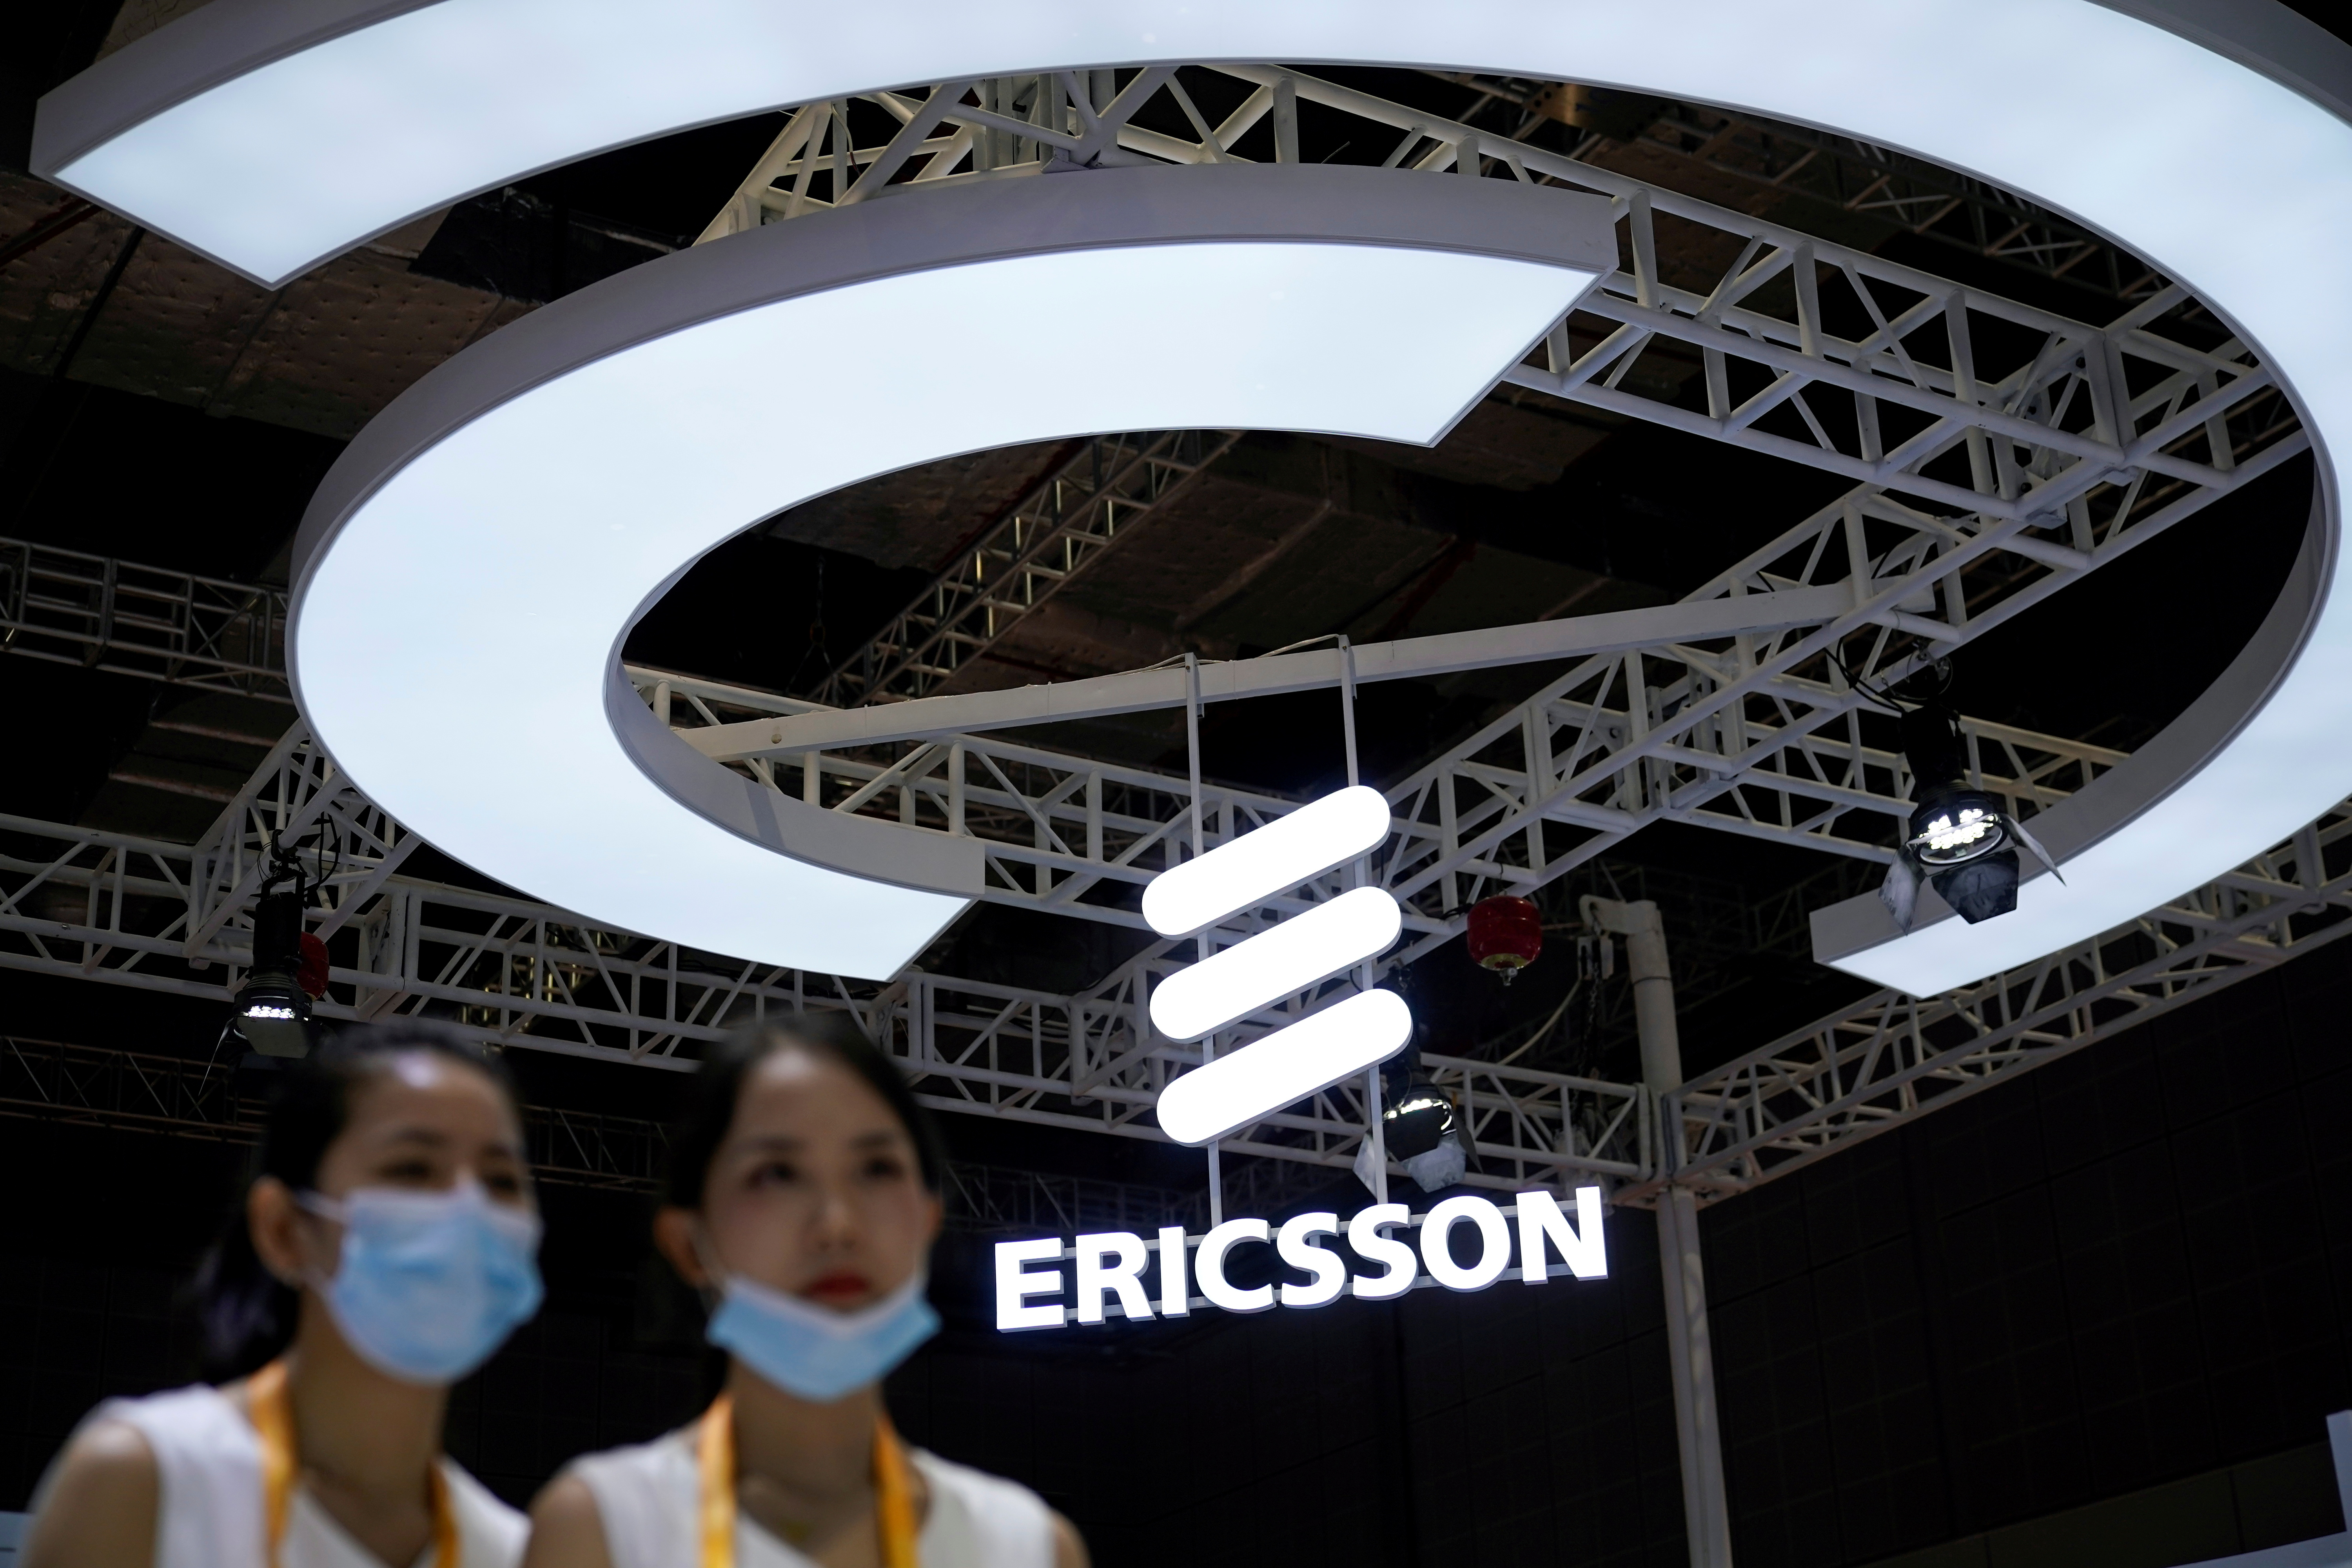 An Ericsson sign is seen at the third China International Import Expo (CIIE) in Shanghai, China November 5, 2020. REUTERS/Aly Song/File Photo